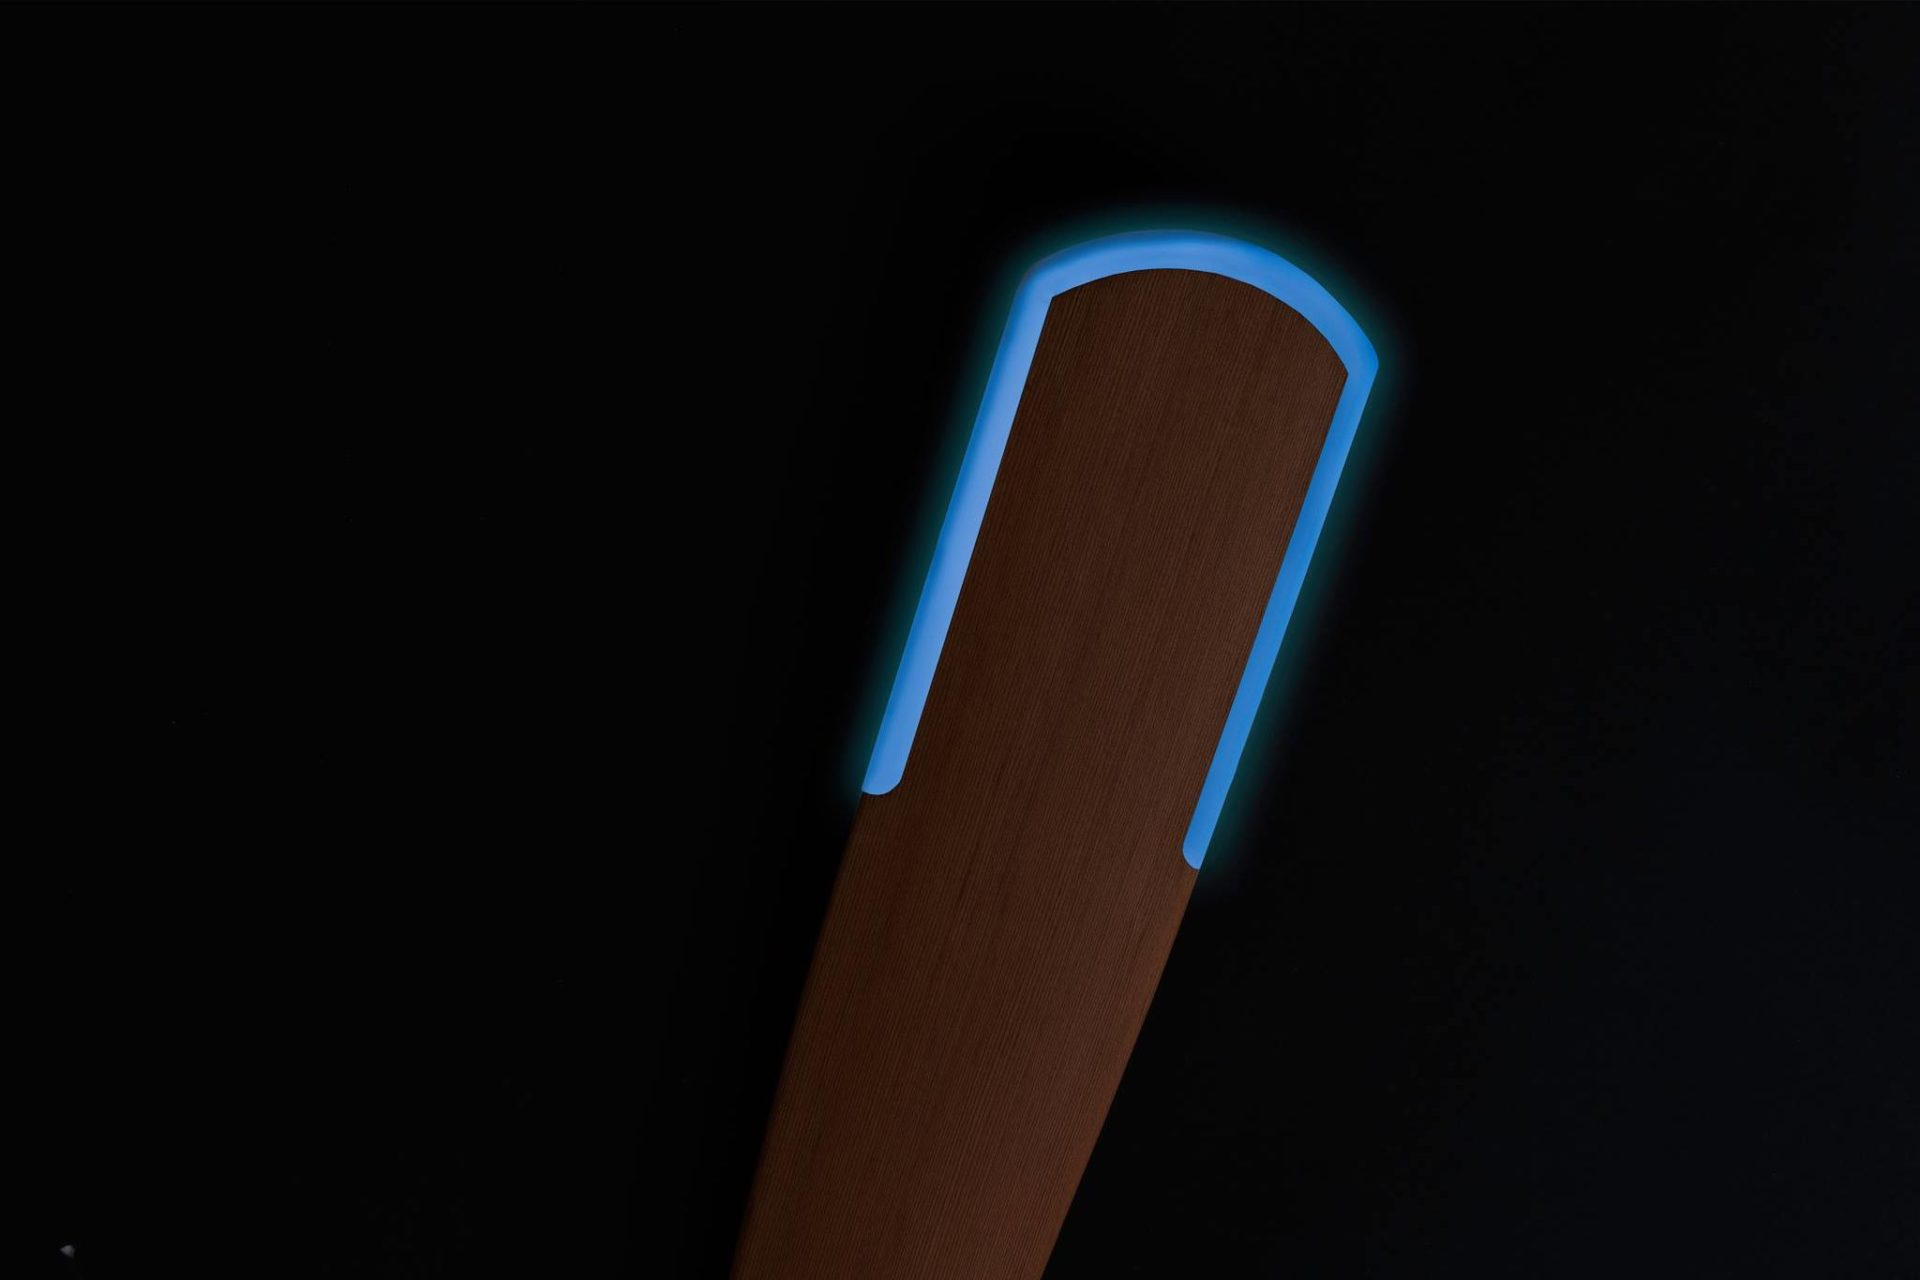 Glowing in the dark greenland kayak paddle